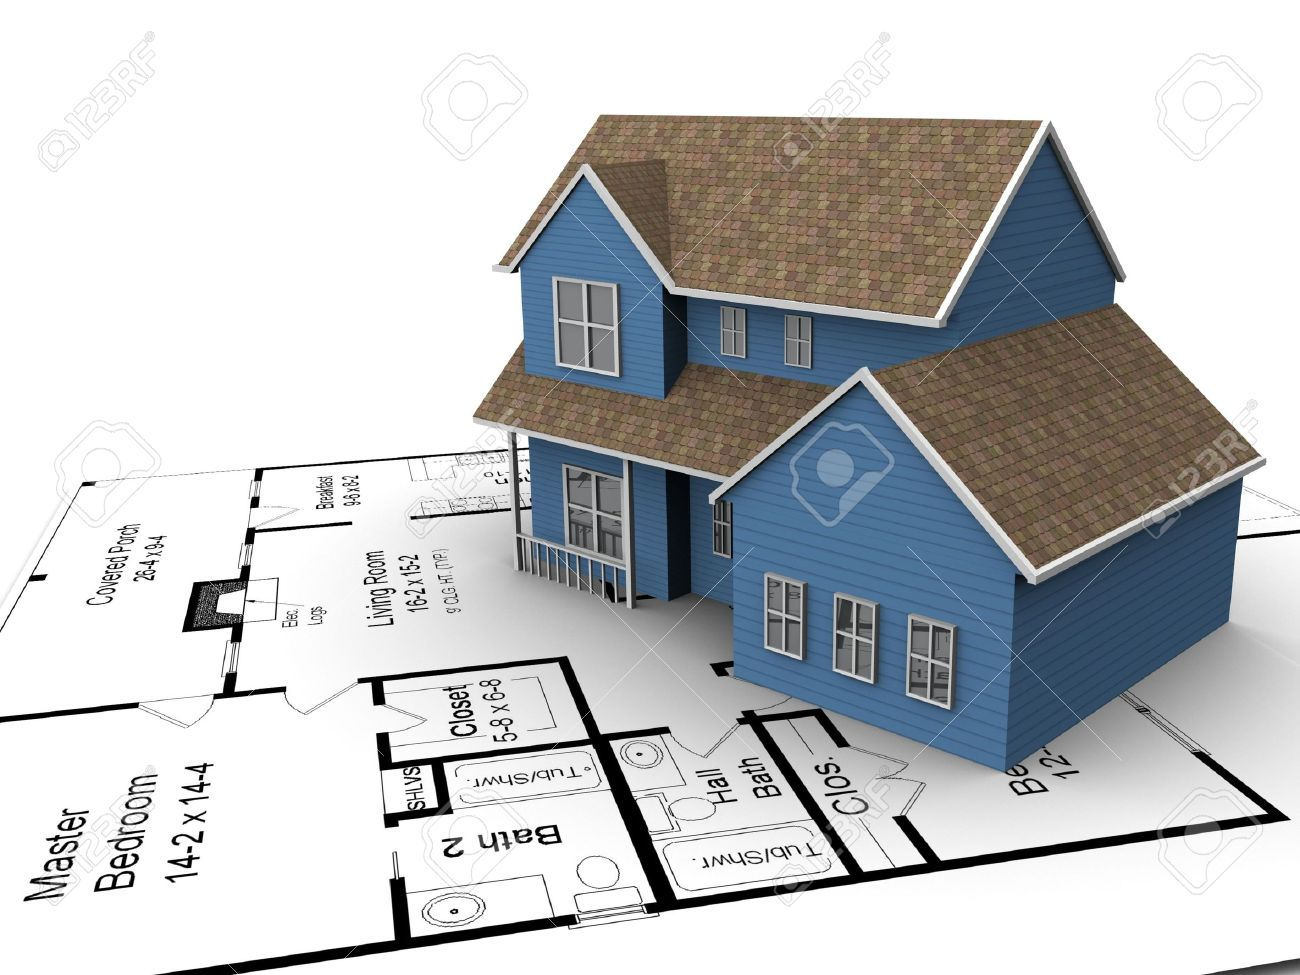 3720226 New Build House On A Set Of Building Plans Stock Photo Construction